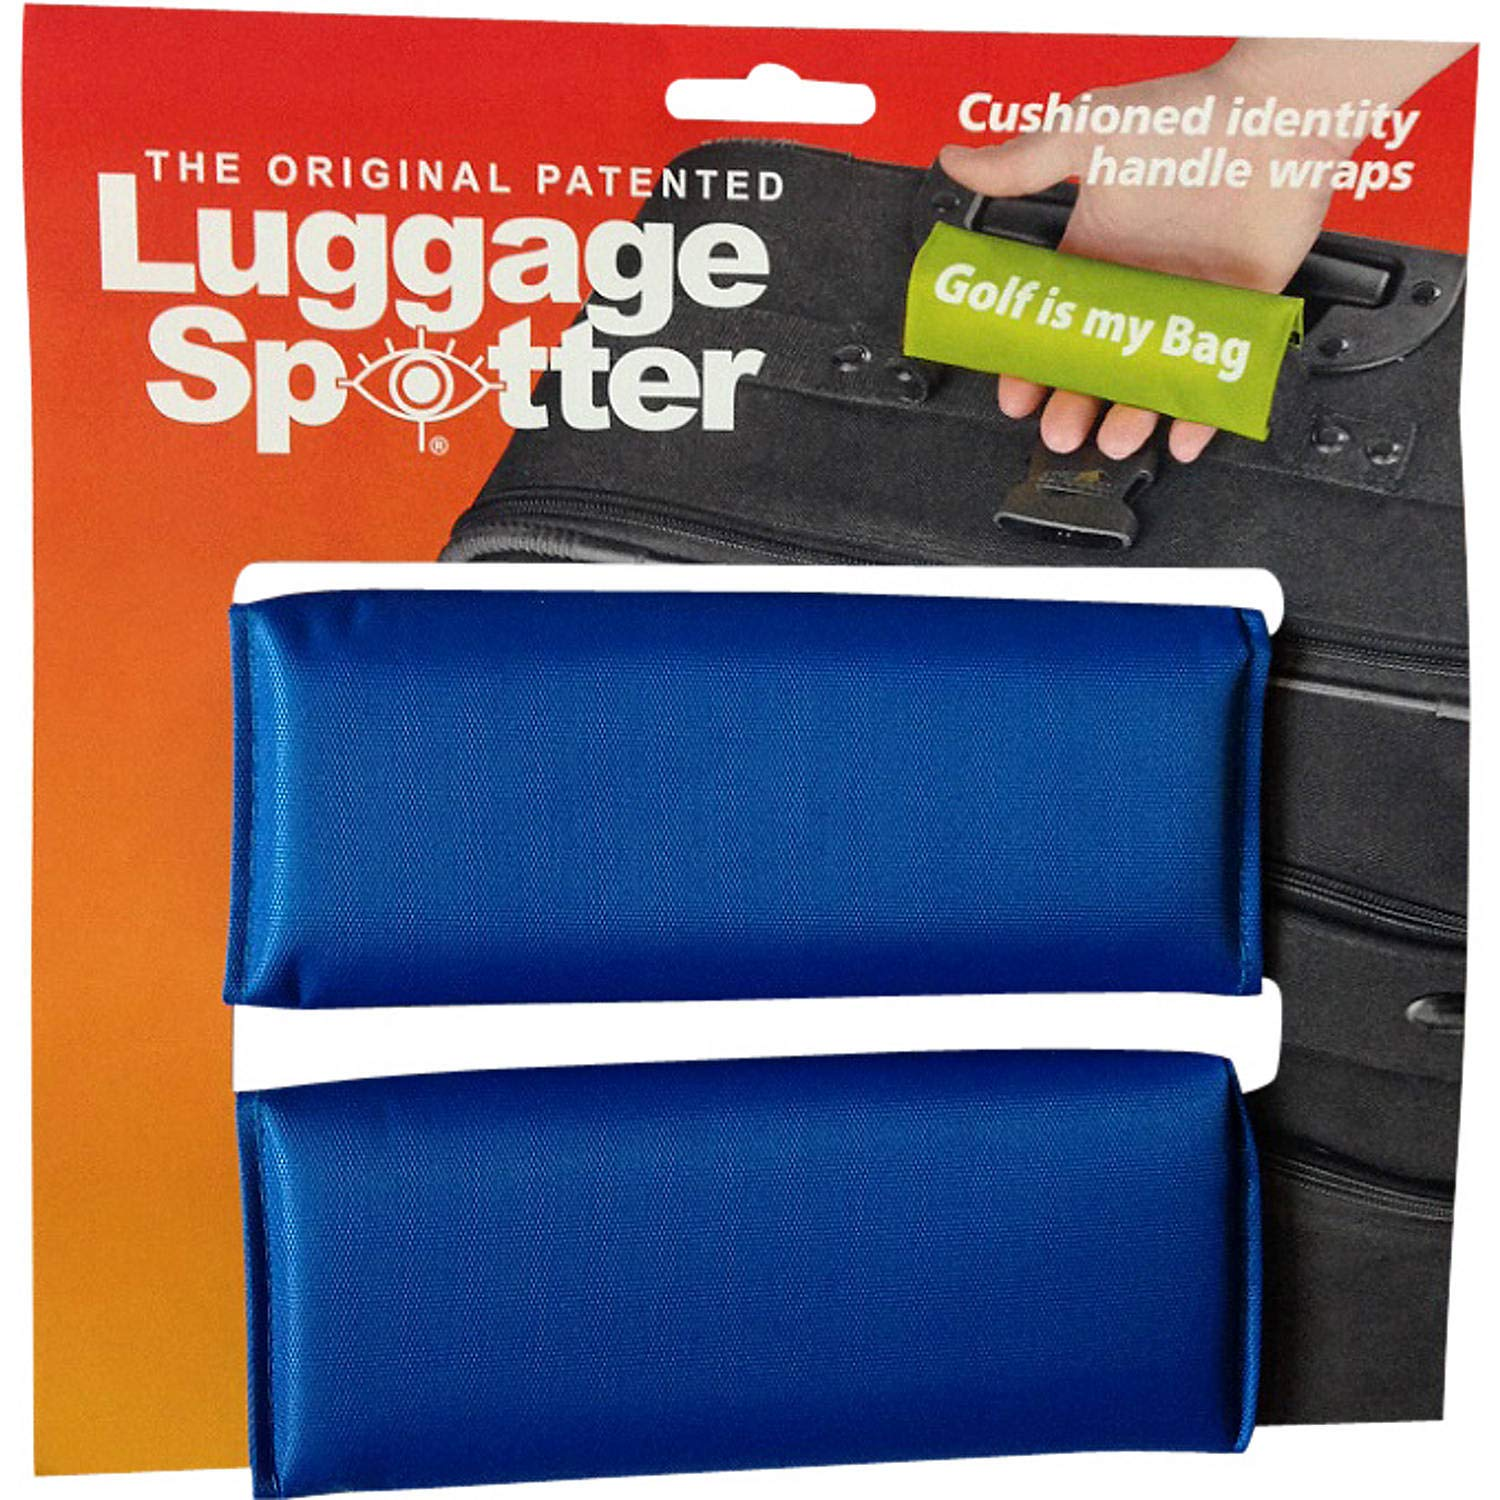 Luggage Spotter Blue Luggage Locator/Handle Grip/Luggage Grip/Travel Bag Tag/Luggage Handle Wrap (2 Pack) by Luggage Spotter